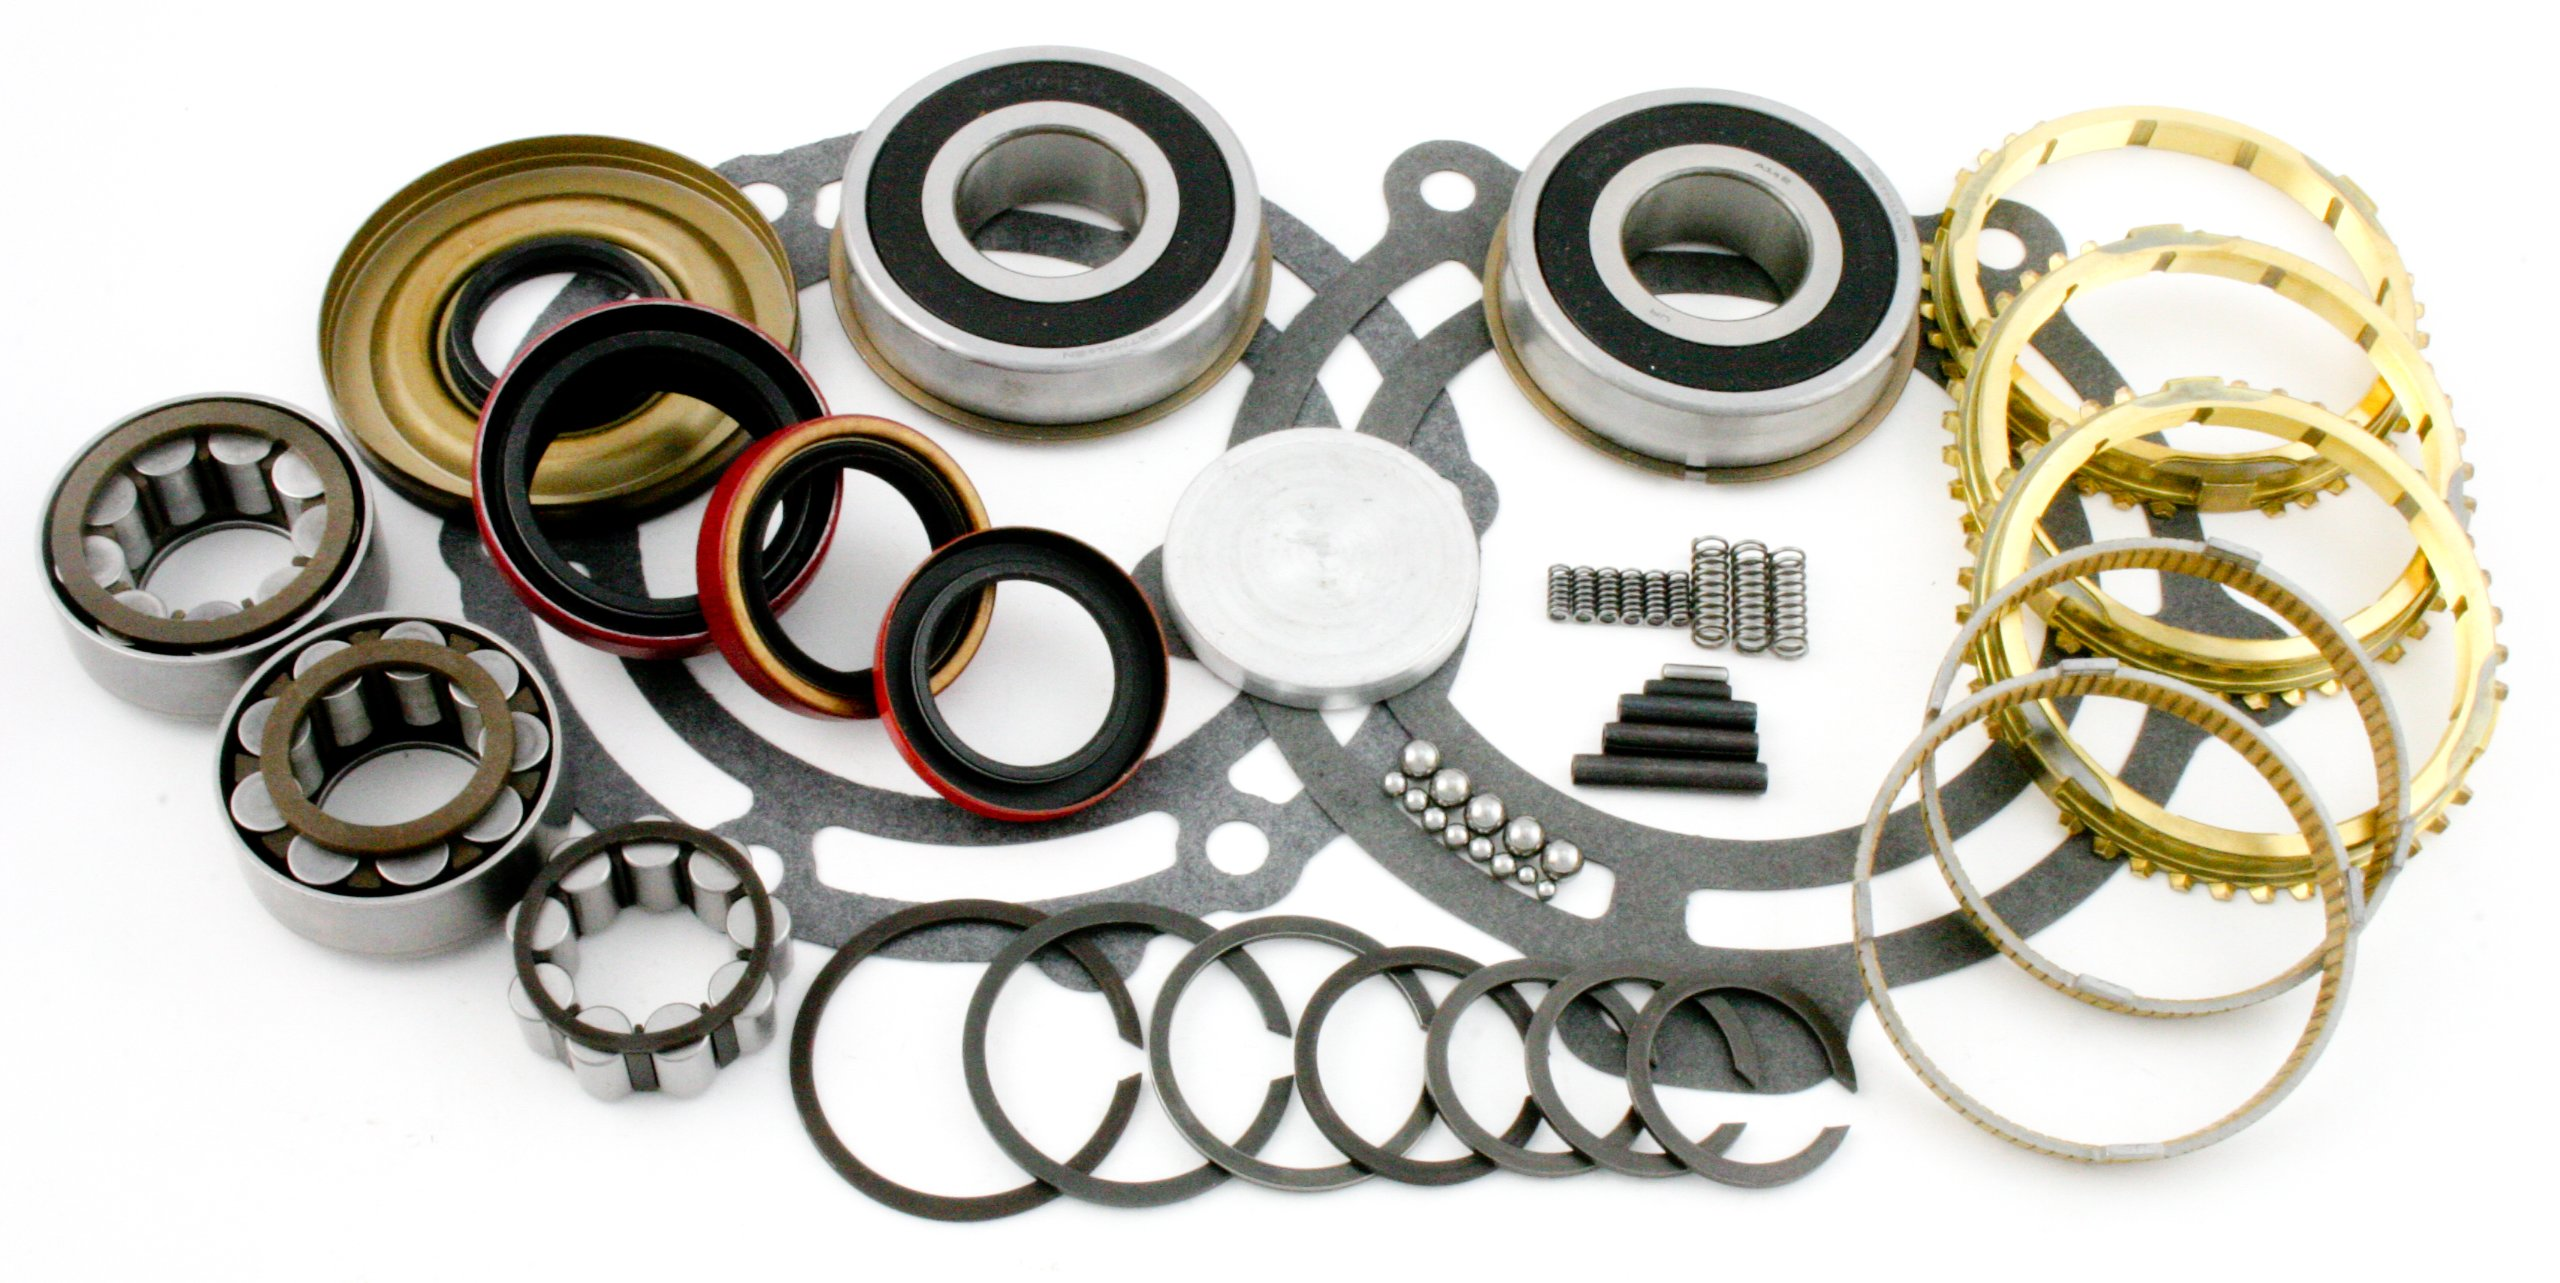 Transparts Warehouse BK235DWS GM NV3500 Getrag 290 Transmission Rebuild Kit